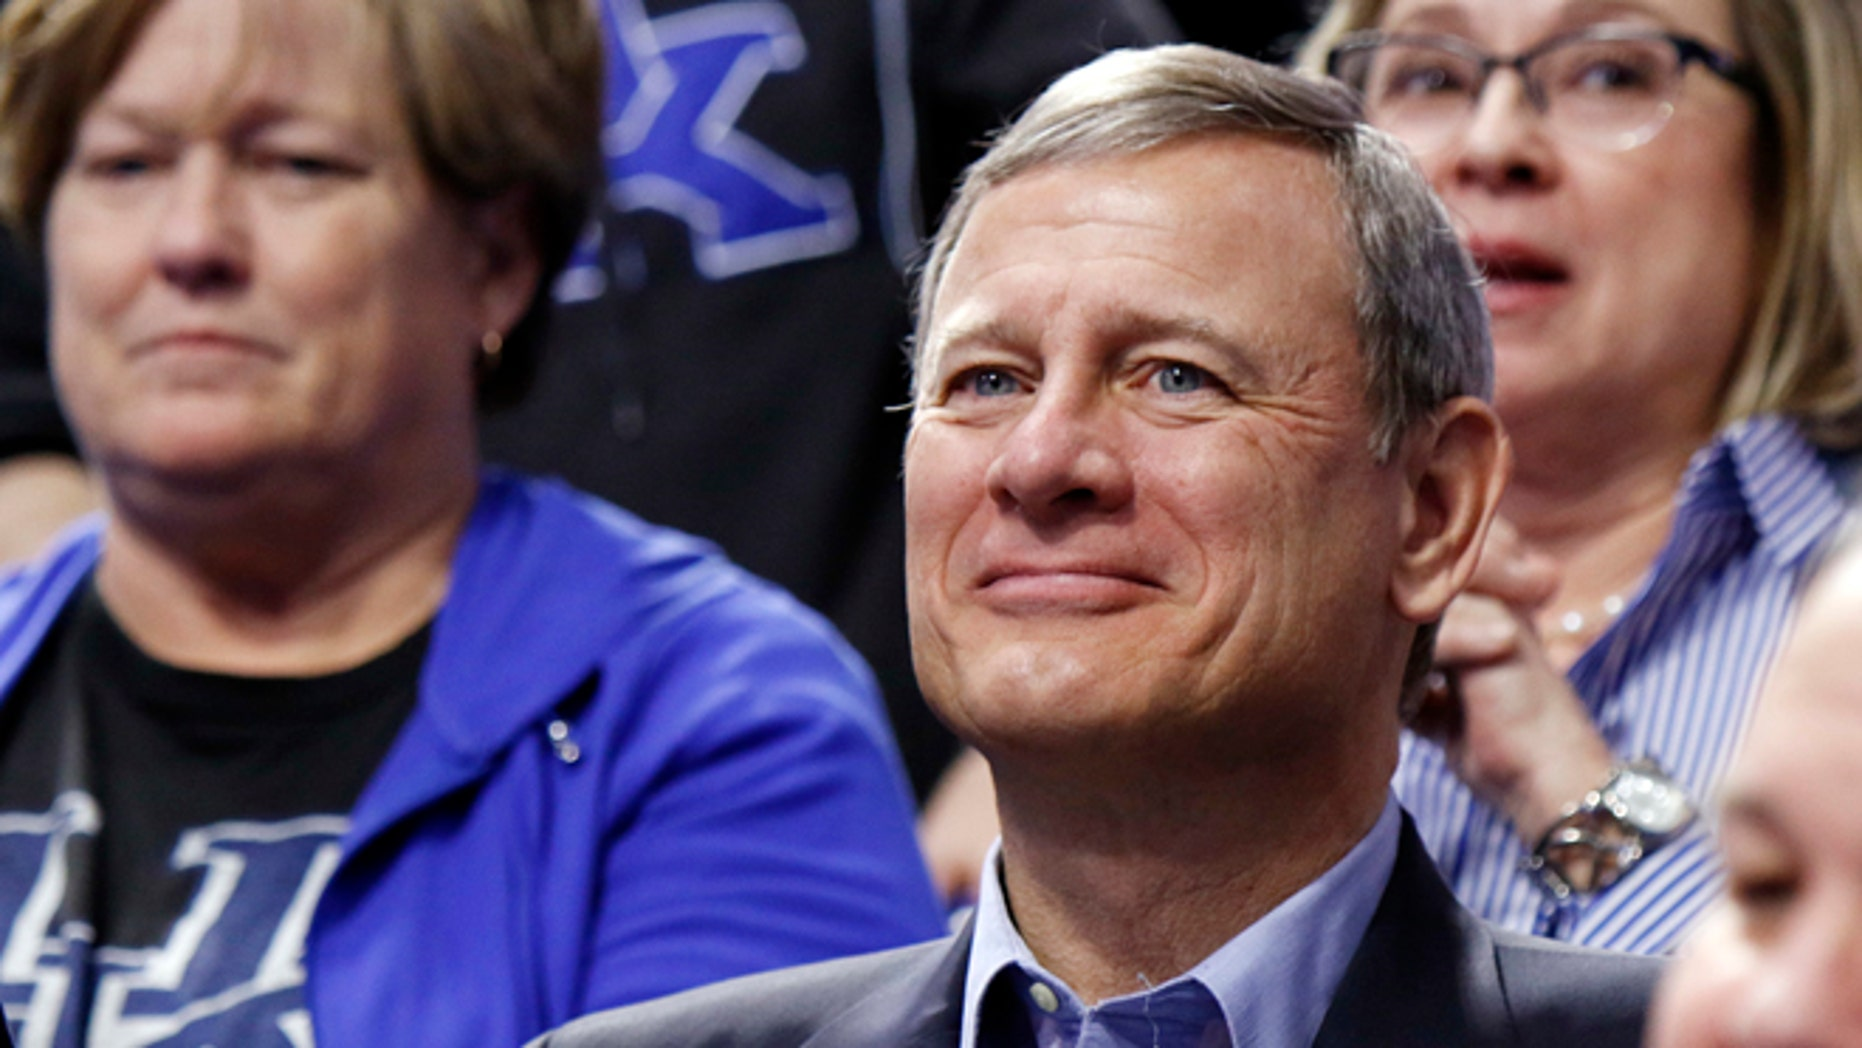 Chief Justice of the U.S. Supreme Court John Roberts watches the first half of an NCAA college basketball game between Kentucky and Georgia, Tuesday, Jan. 31, 2017, in Lexington, Ky. (AP Photo/James Crisp)